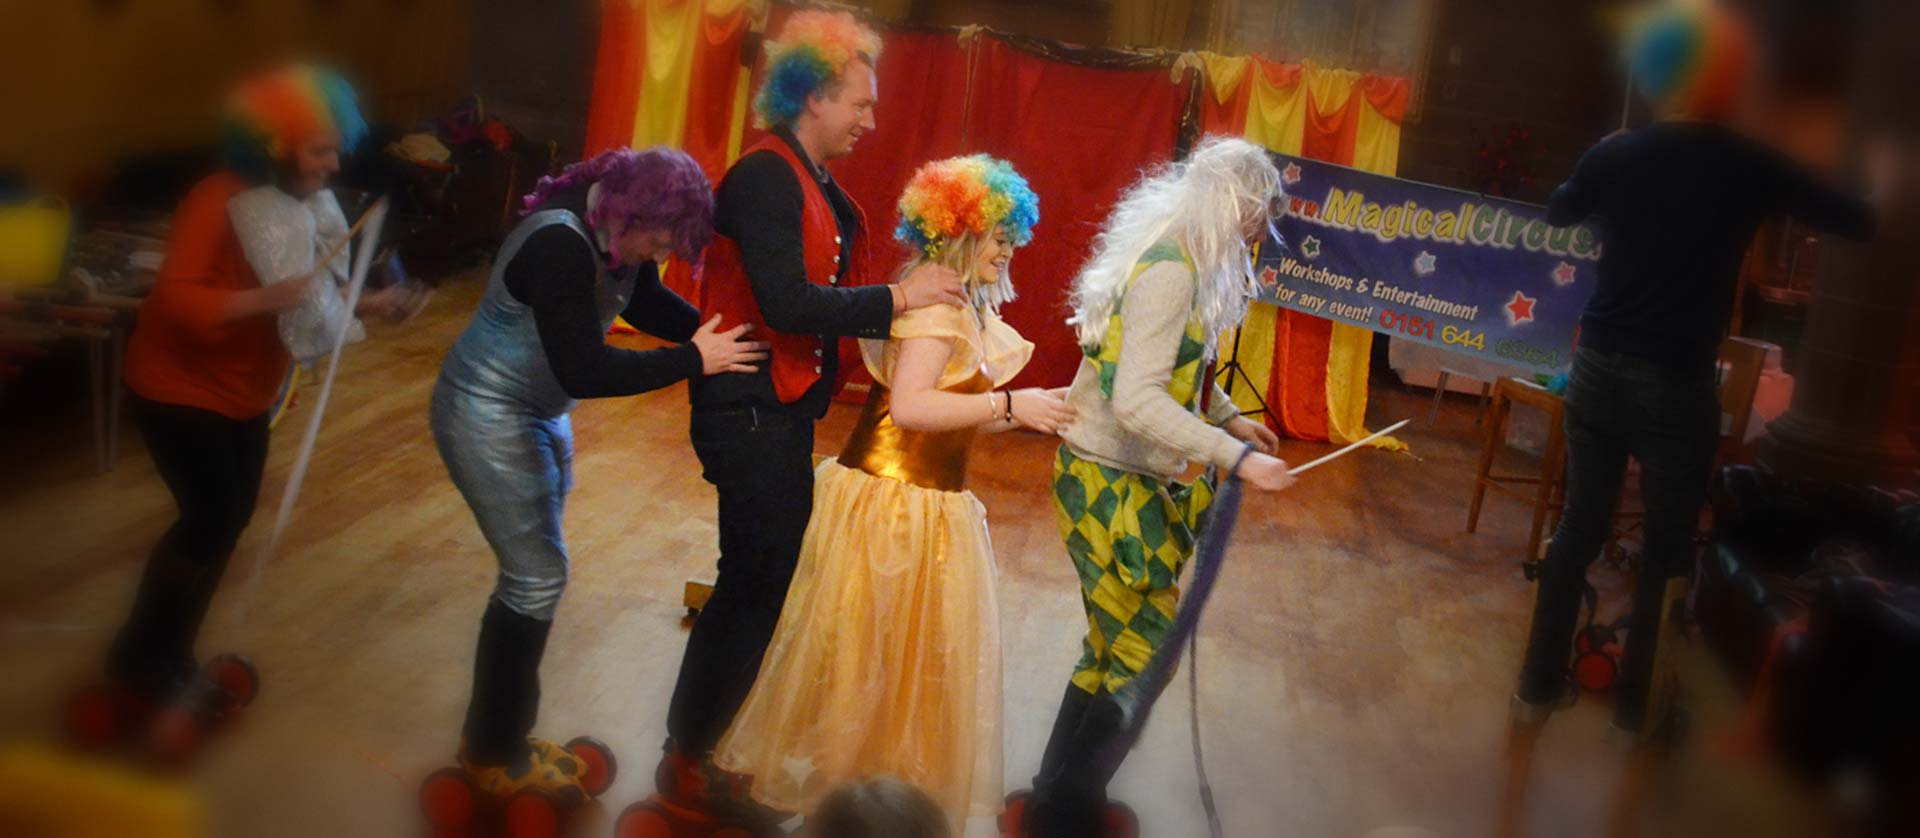 Magical Circus corporate team building events.